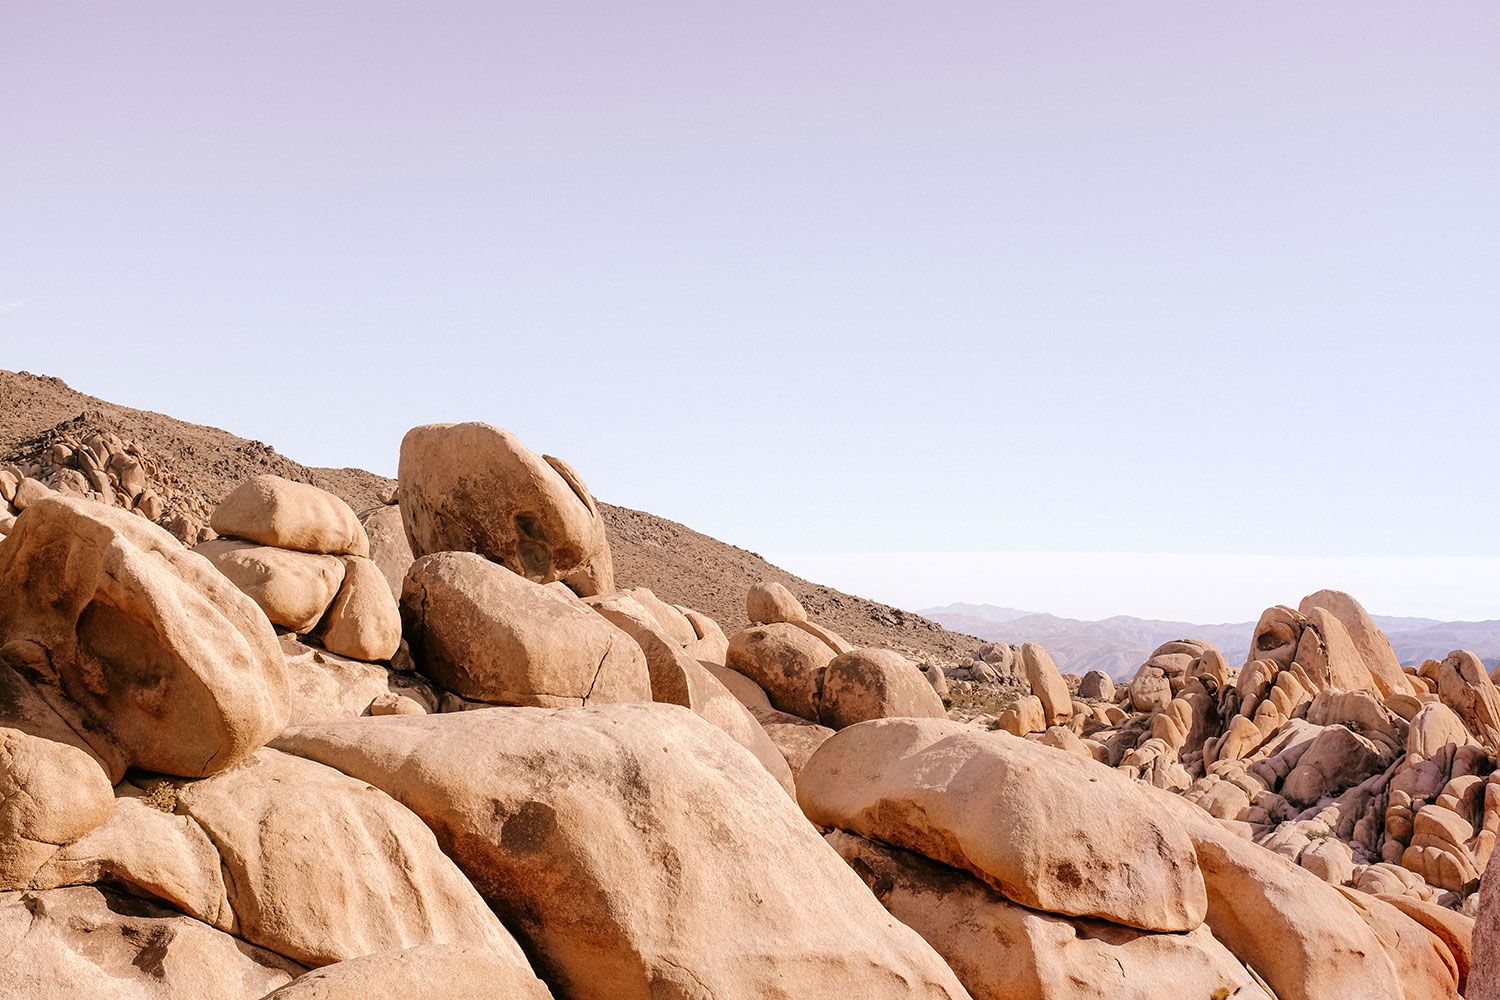 View at Arch Rock Trail in Joshua Tree